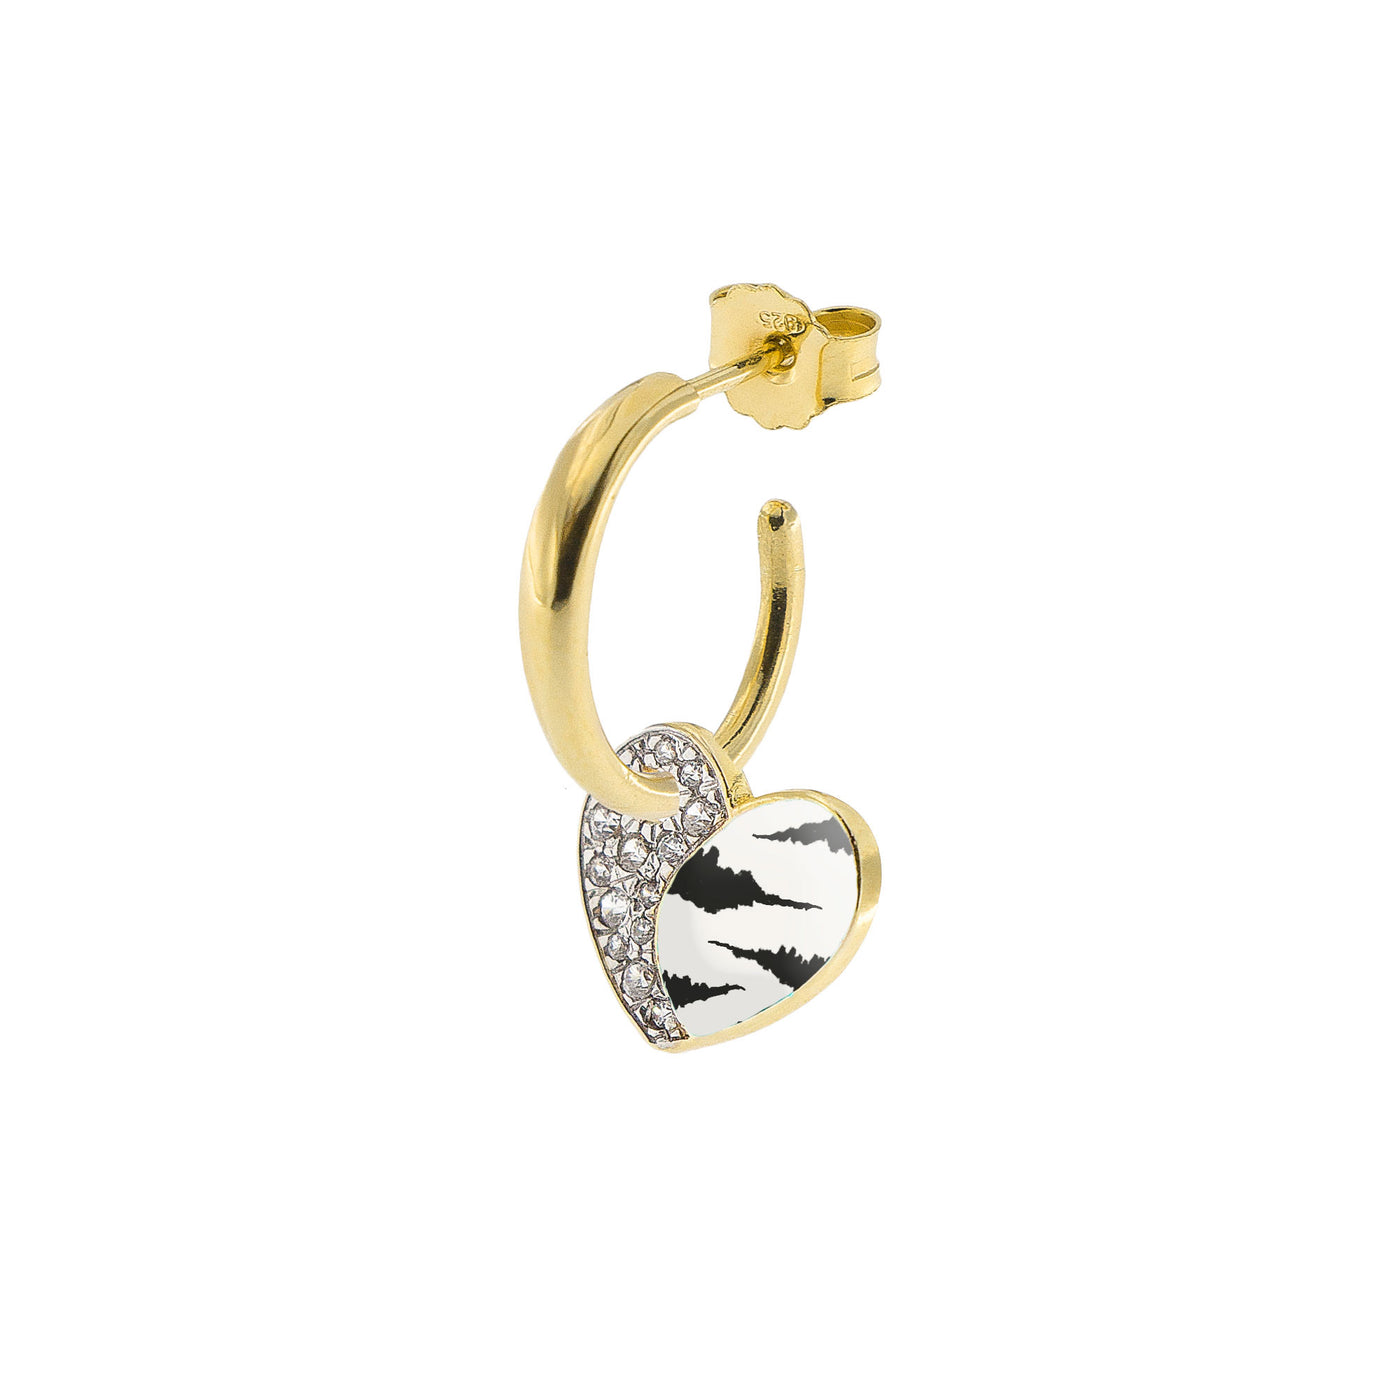 Earrings - Single Earring With Small Hoop and Heart - Zebra Print - 1 | Rue des Mille